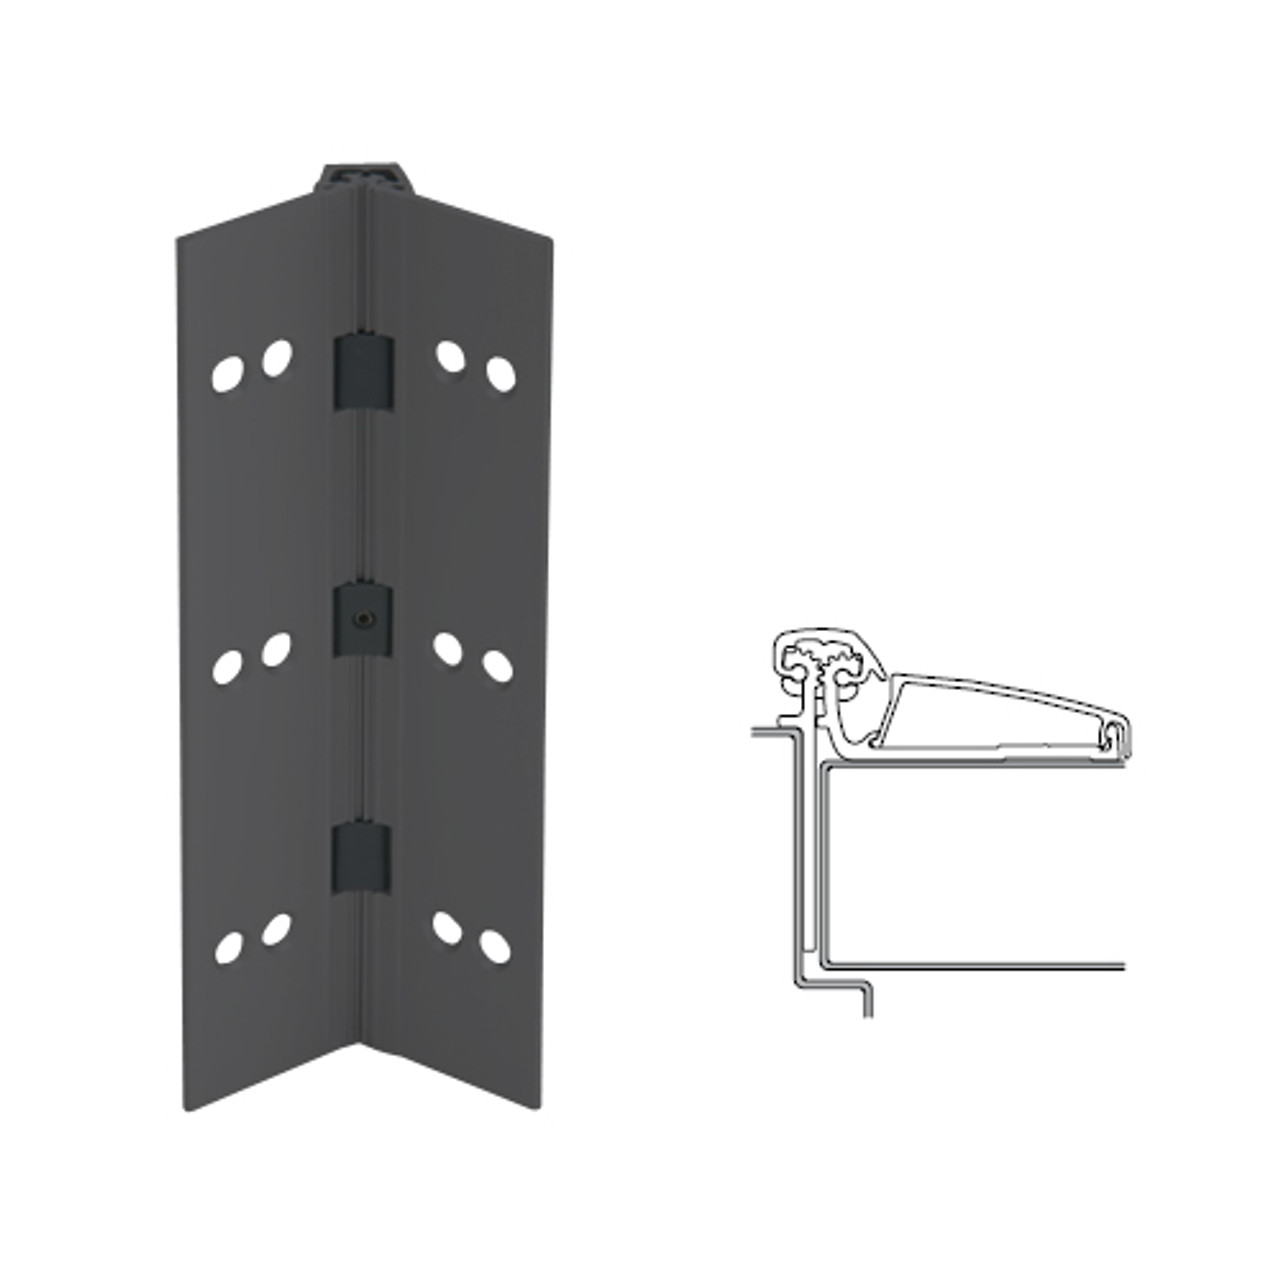 046XY-315AN-120-SECHM IVES Adjustable Half Surface Continuous Geared Hinges with Security Screws - Hex Pin Drive in Anodized Black